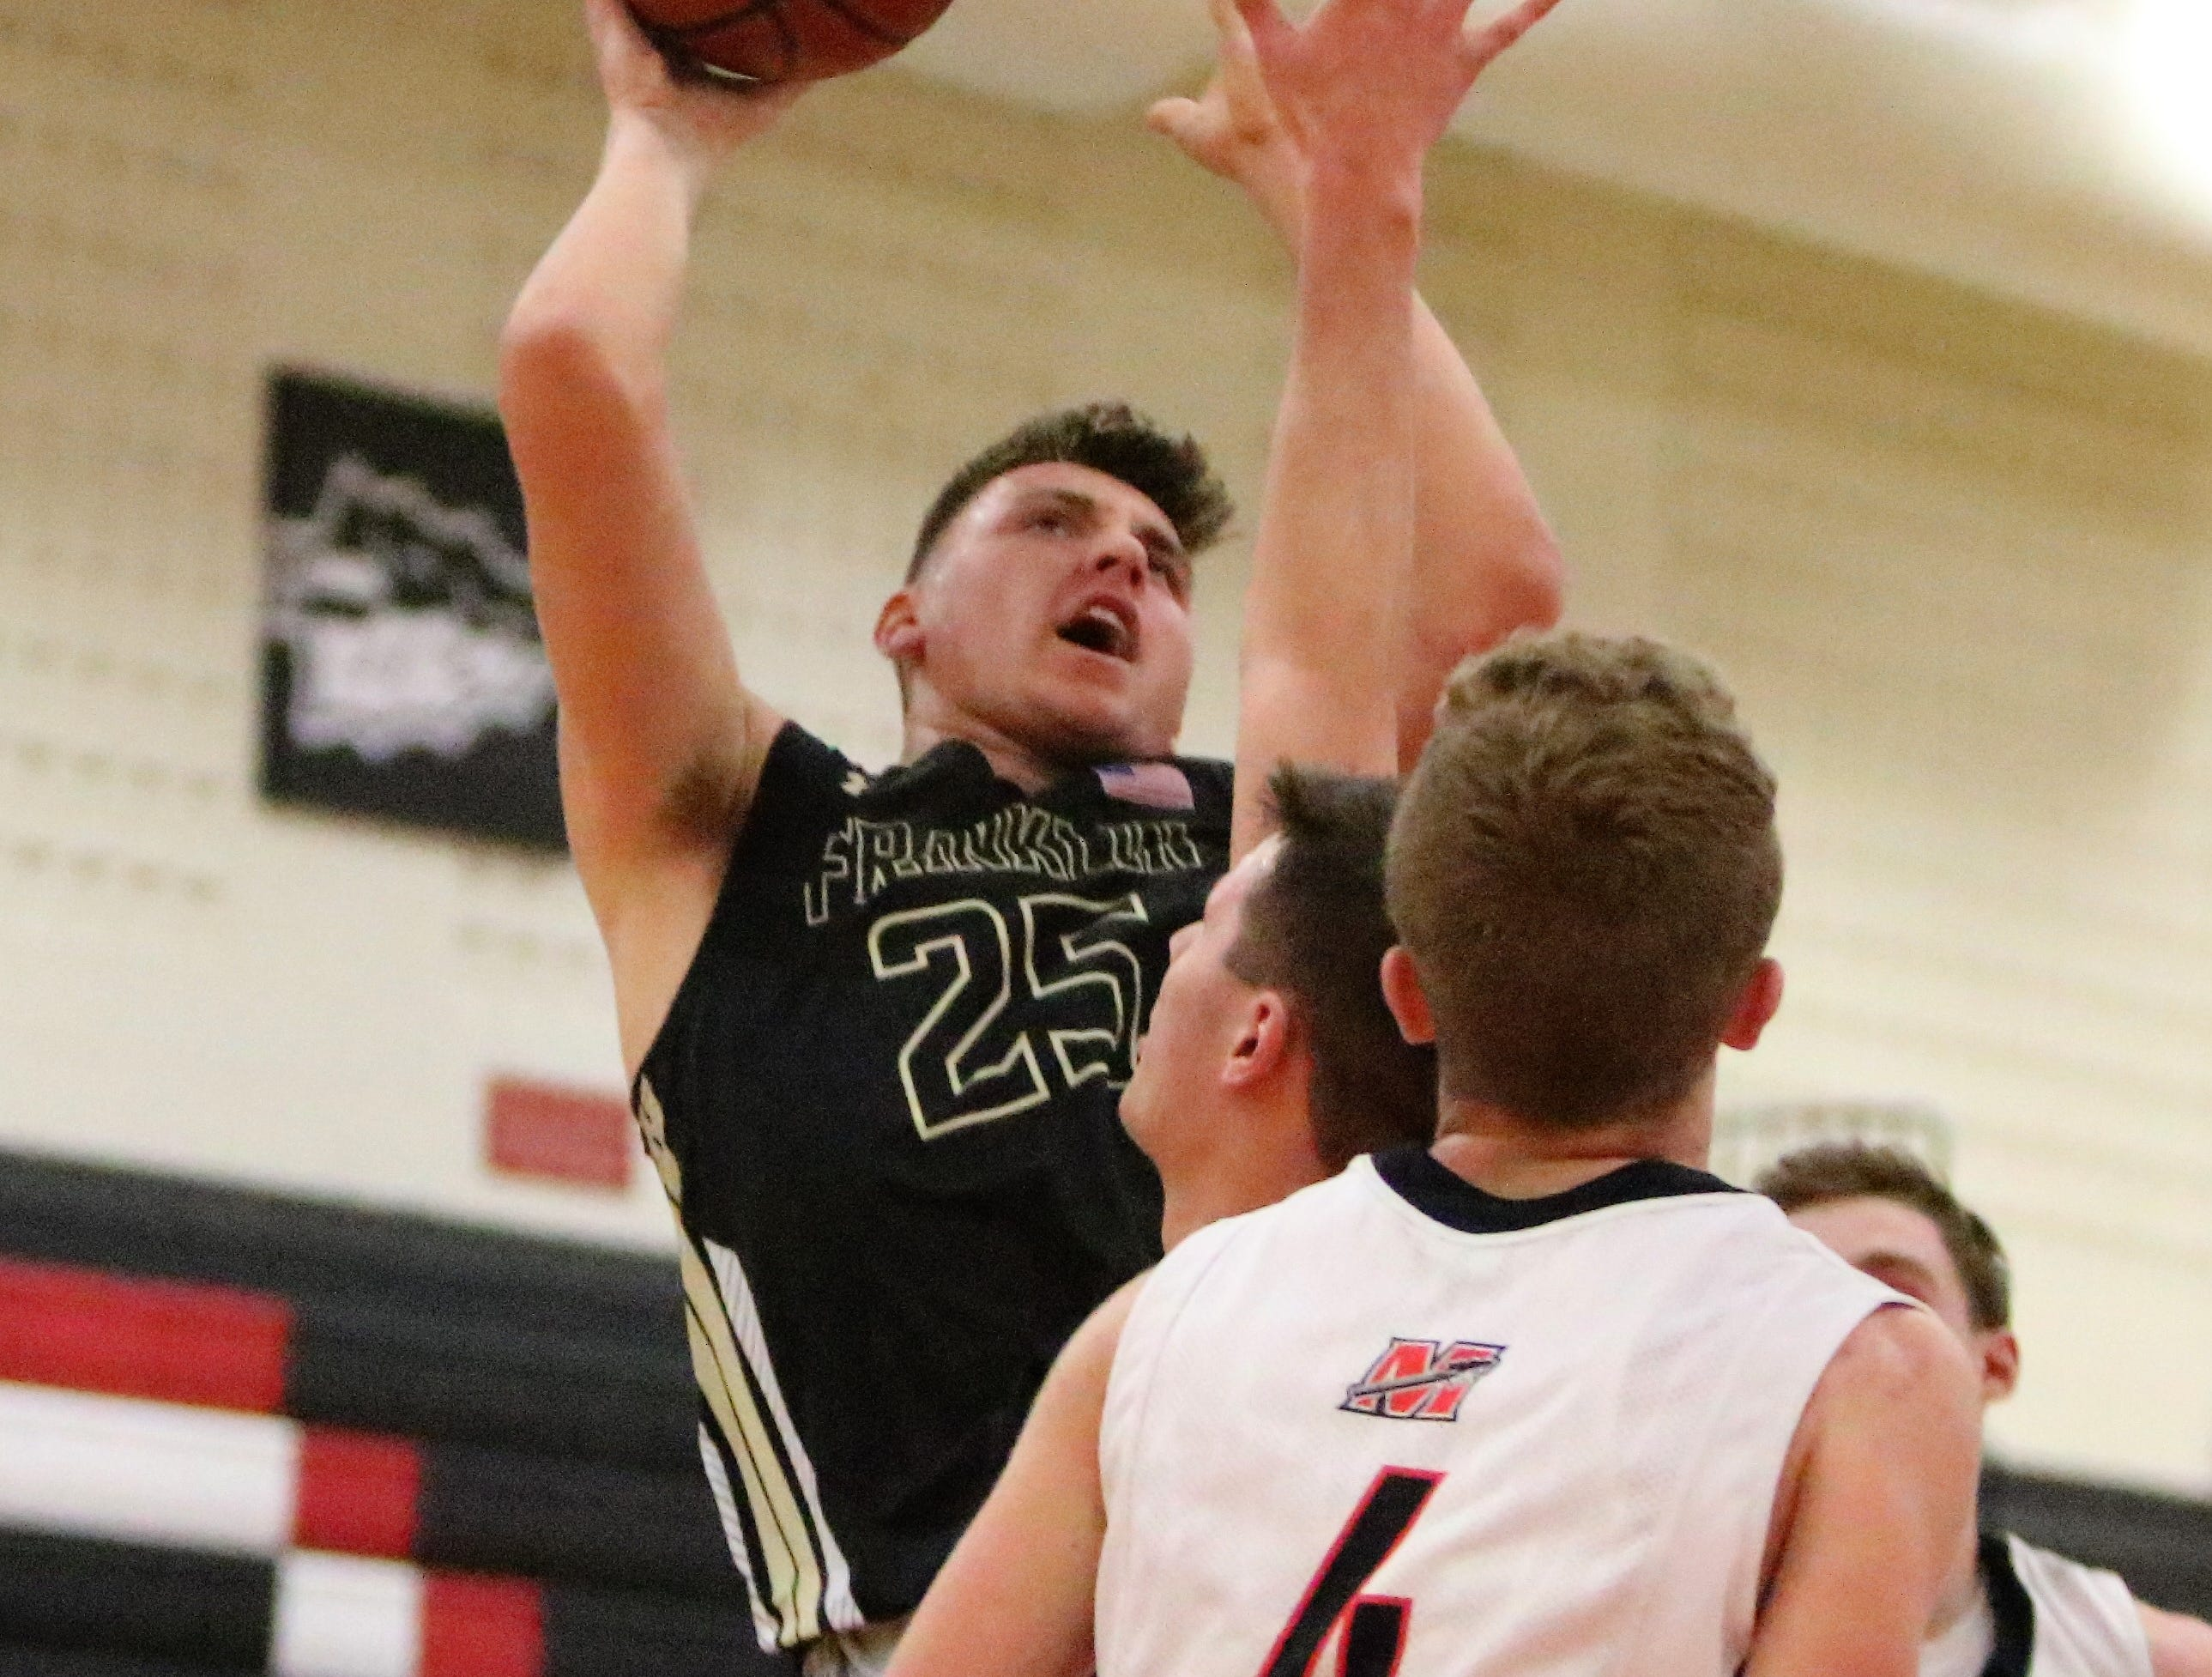 Franklin forward Carter Capstran puts up a shot in the post against Muskego on Feb. 11, 2019.